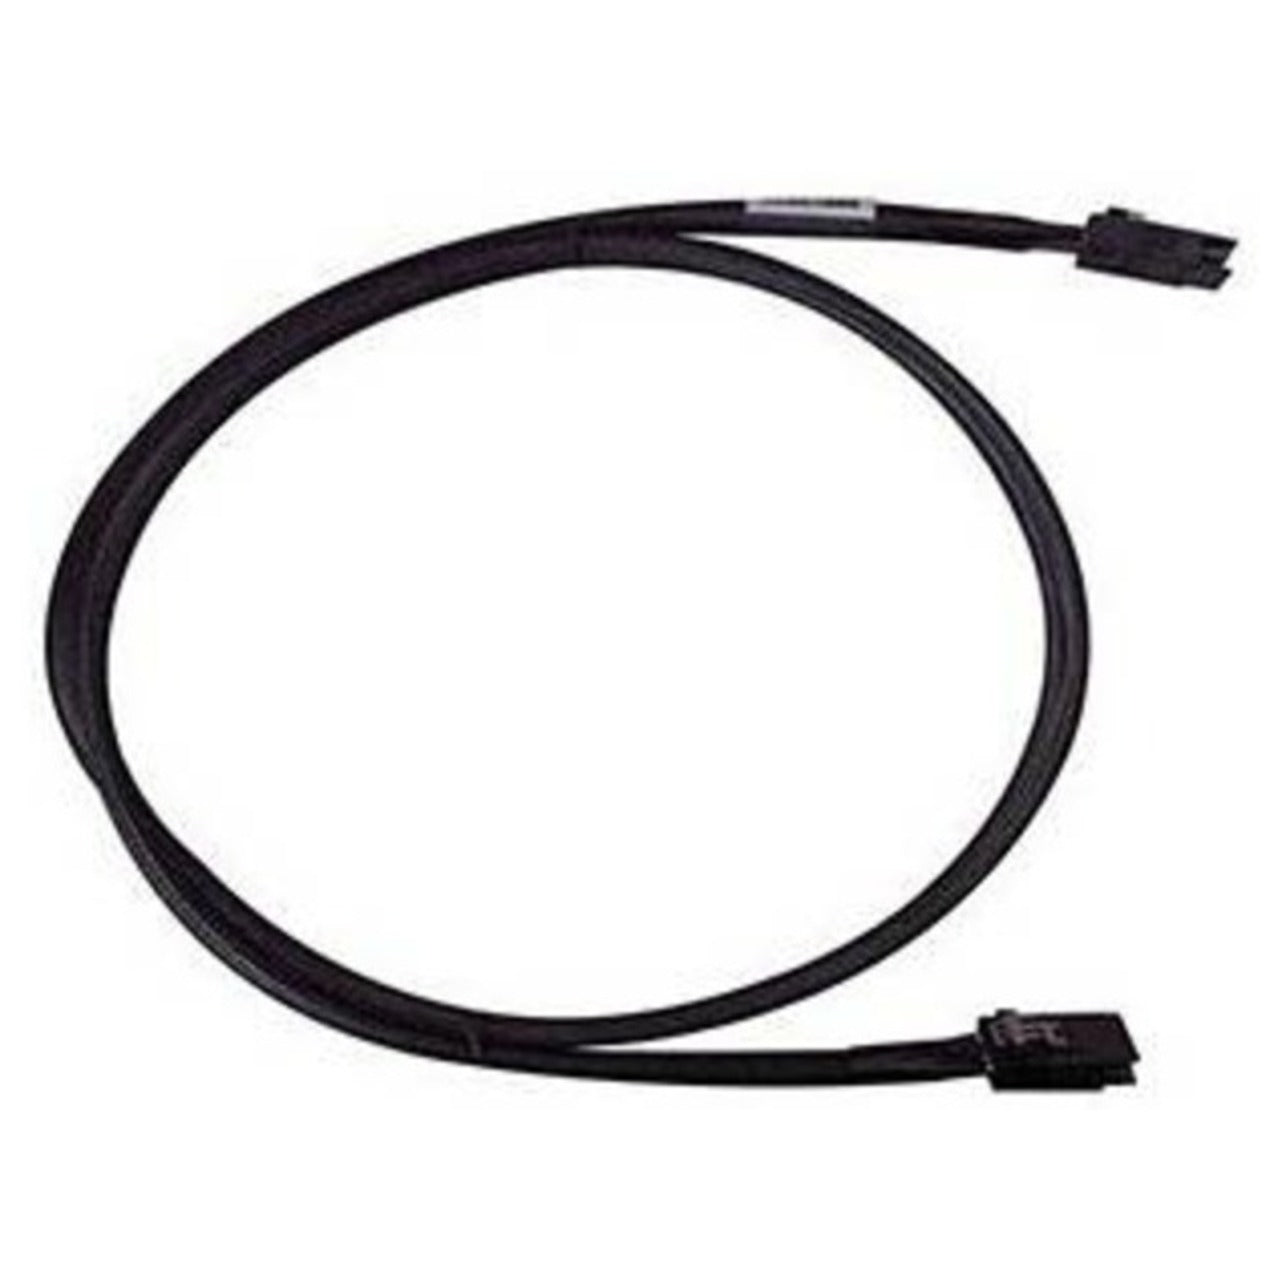 INTEL CABLE KIT, 875mm, MINI SAS HD to MINI SAS HD CABLES